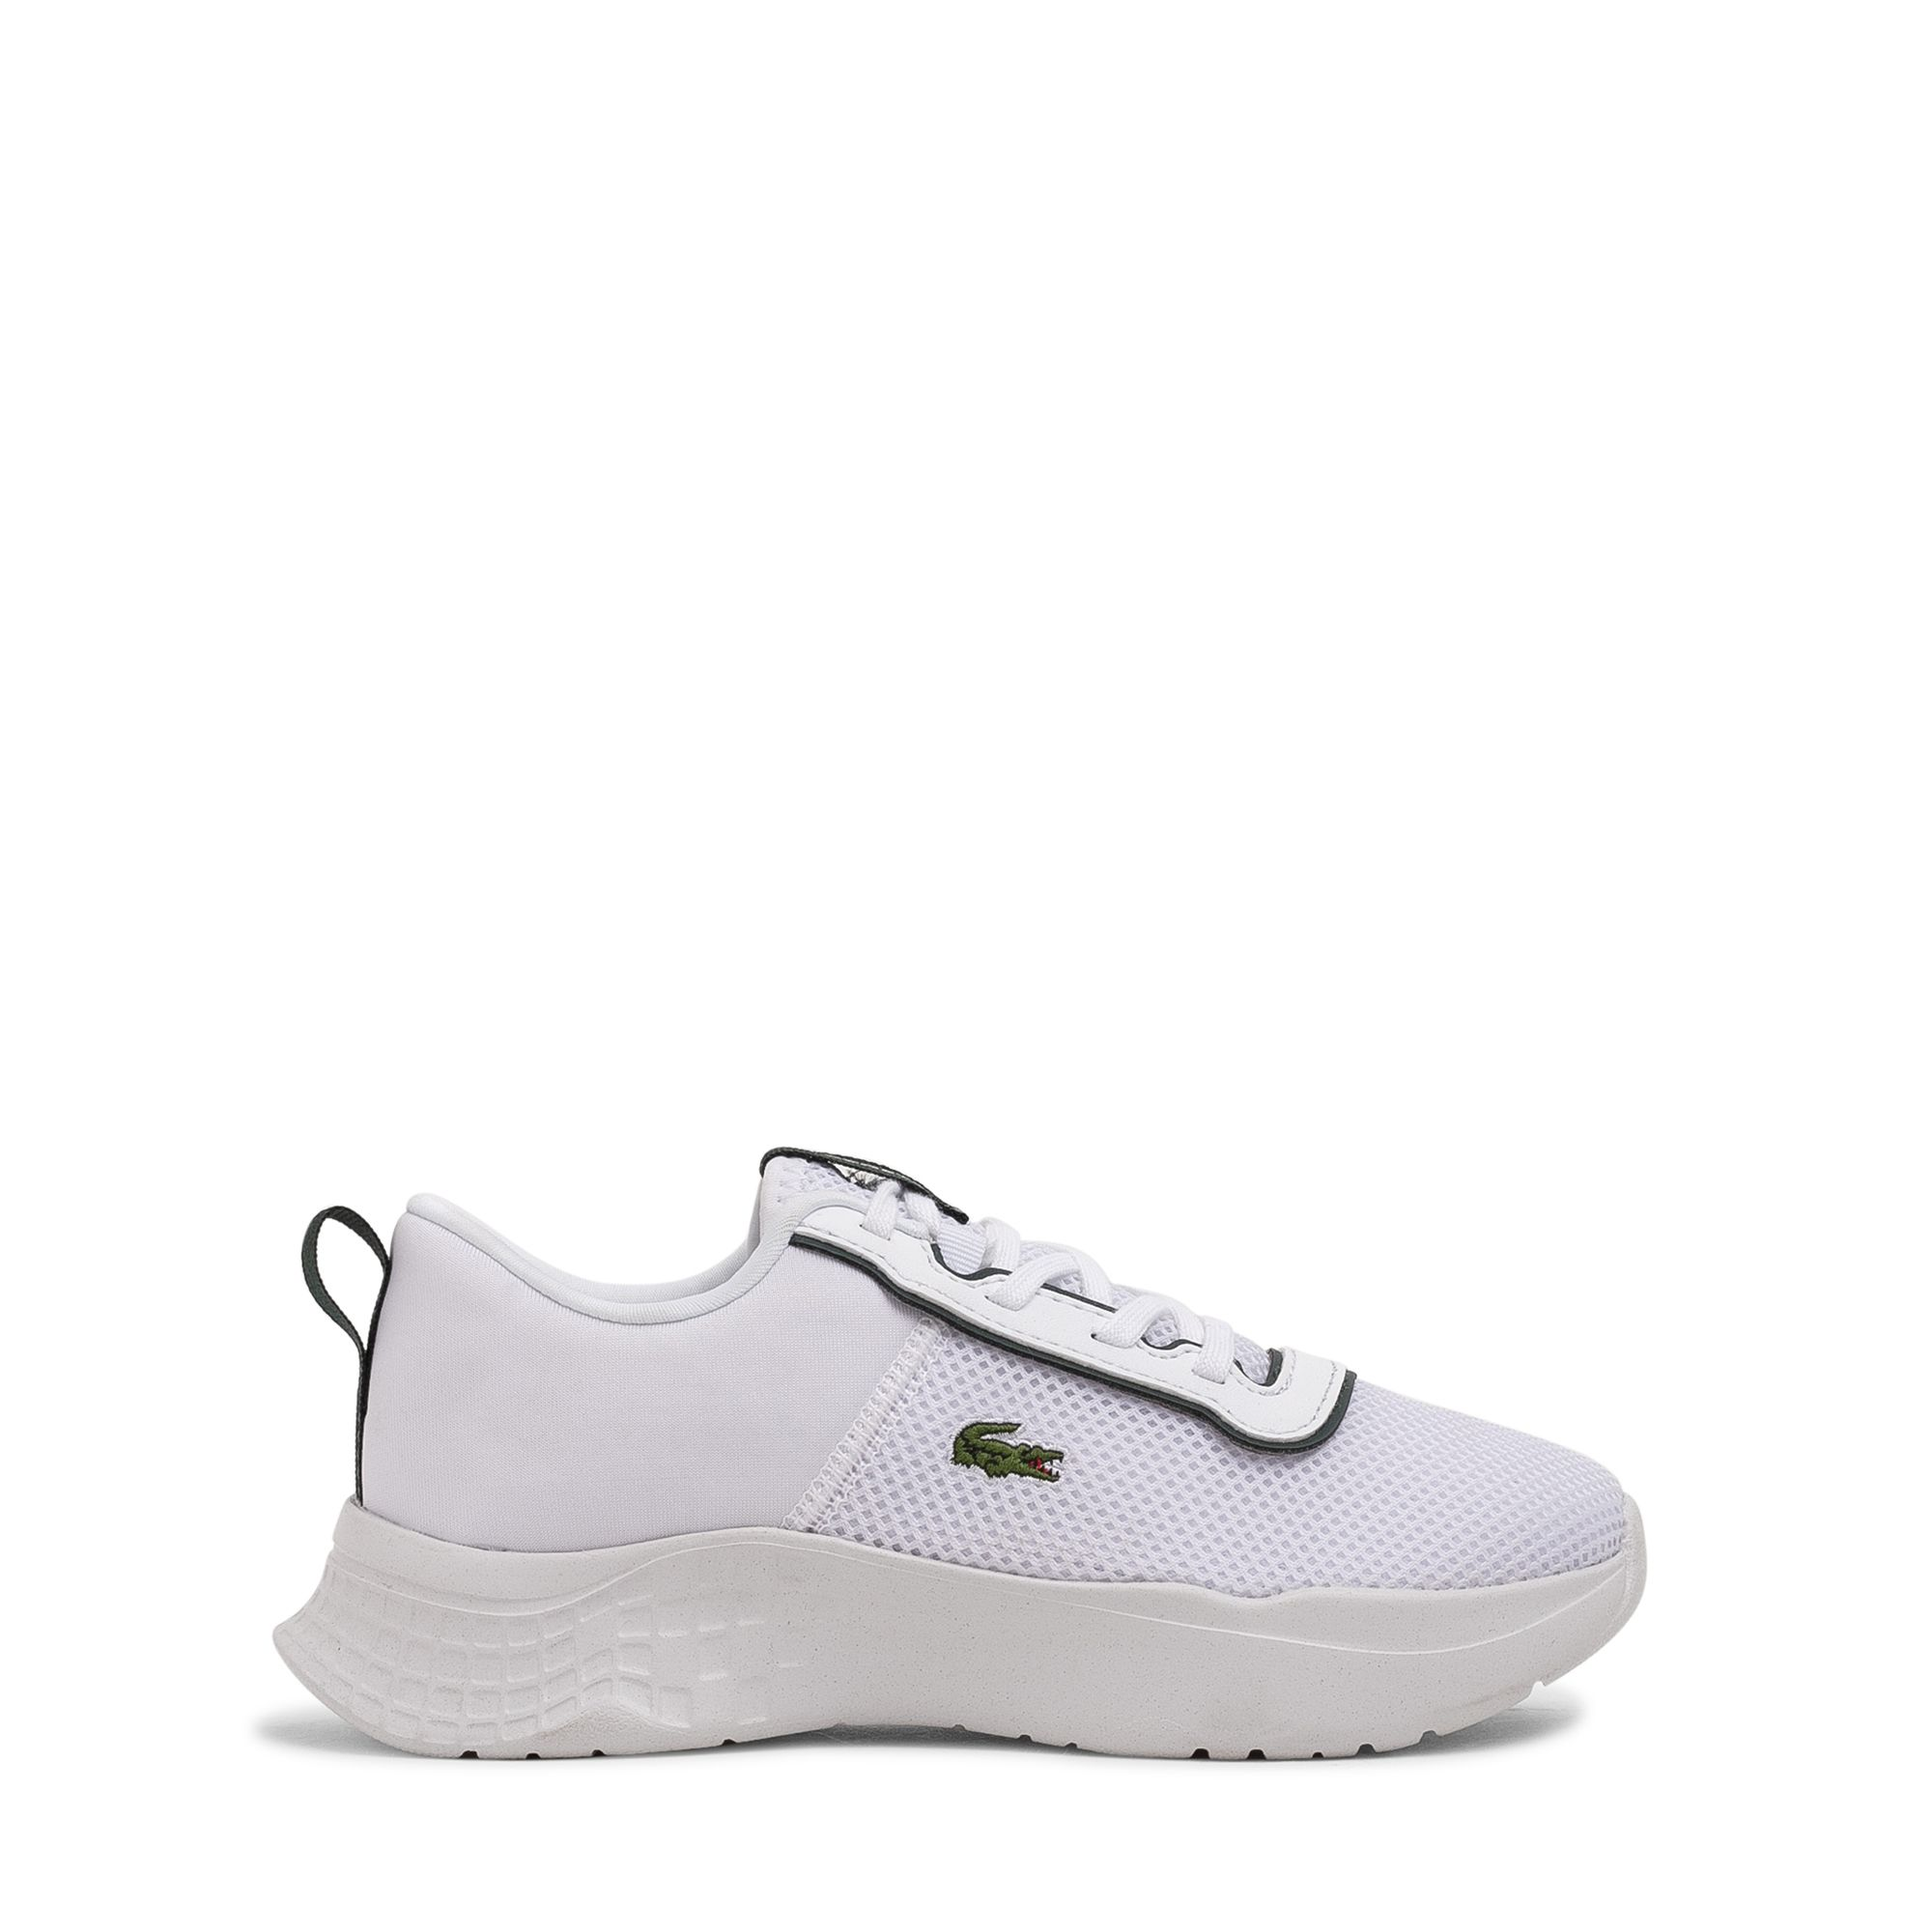 Court-Drive sneakers